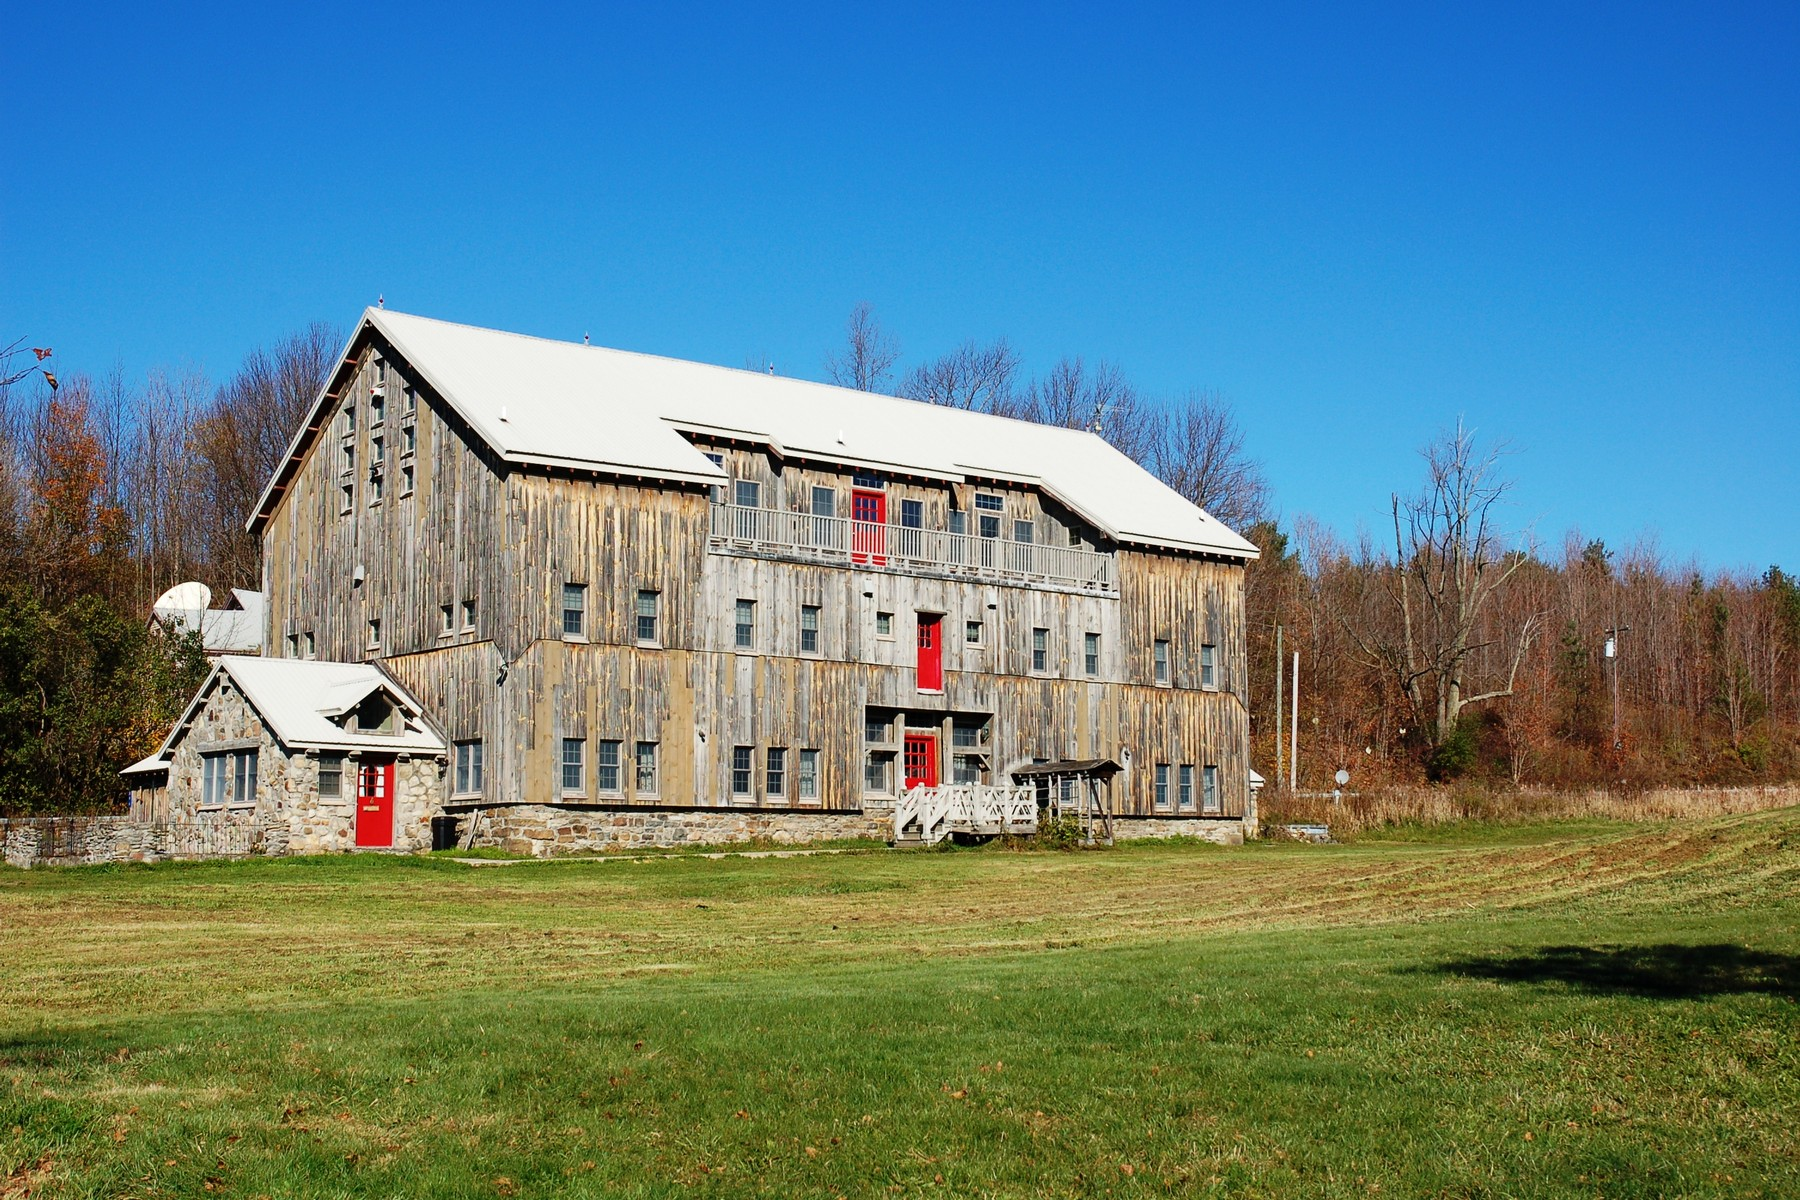 Single Family Home for Sale at Barn 396 Elizabethtown Rd Ilion, New York 13357 United States